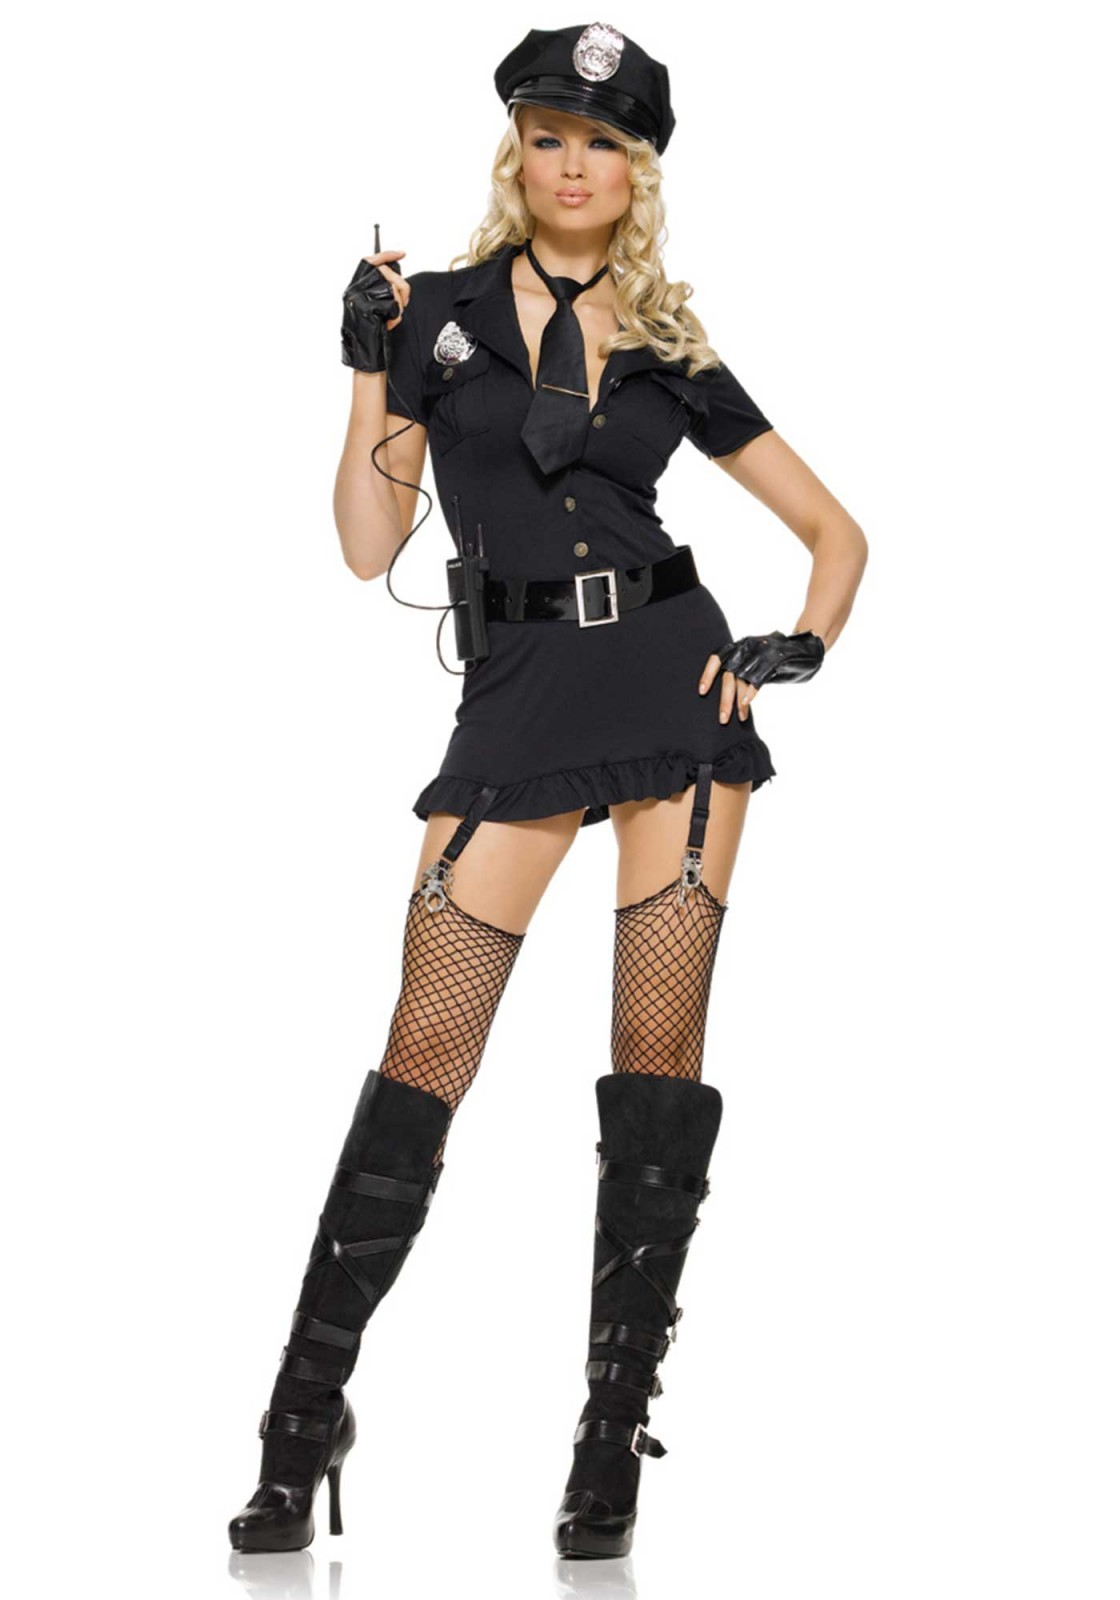 6Pc. Dirty Cop Costume Set With Hat, Dress, Gloves, Belt, Tie And With Walkie Talkie